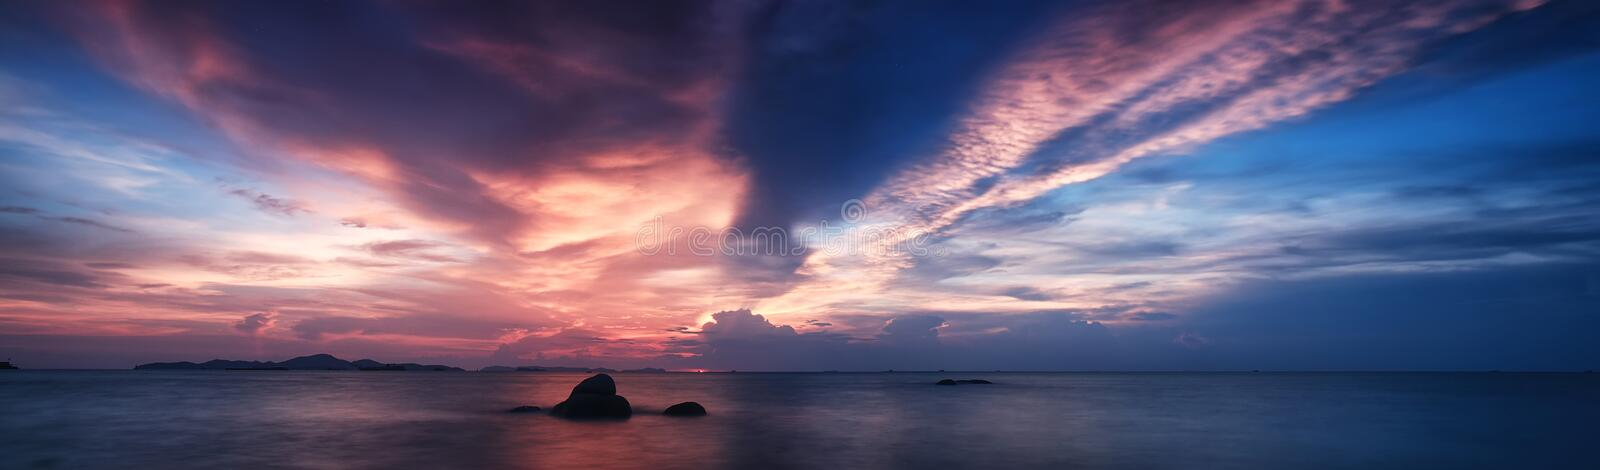 Panorama view of beautiful sunset above the sea at tropical beach royalty free stock photography